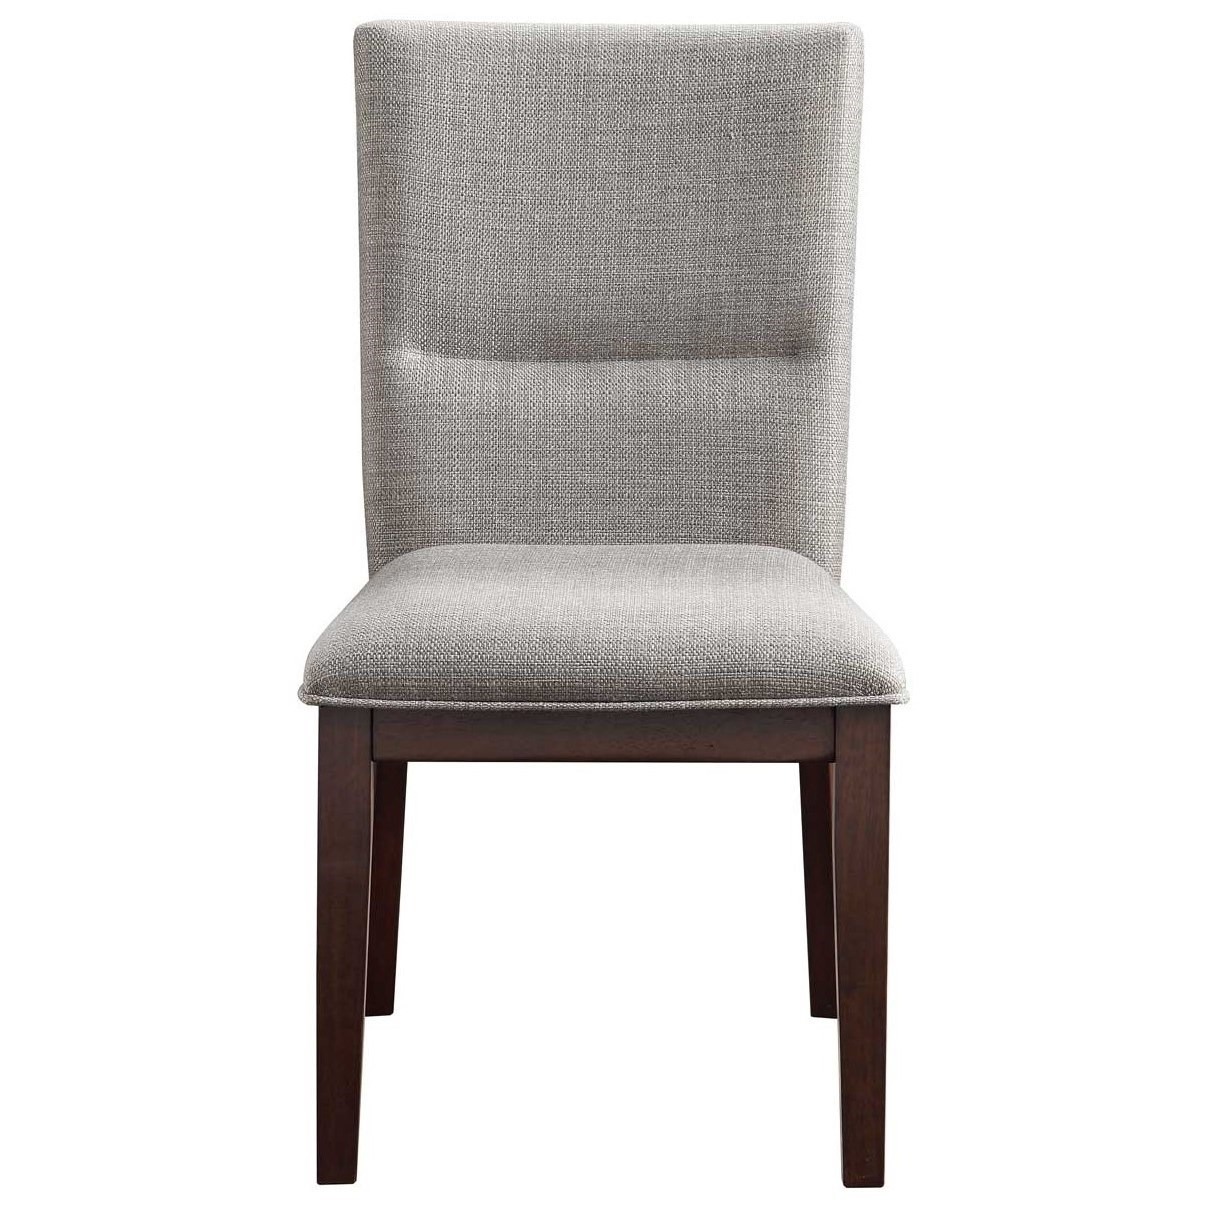 Amalie Upholstered Side Chair  by Steve Silver at Van Hill Furniture